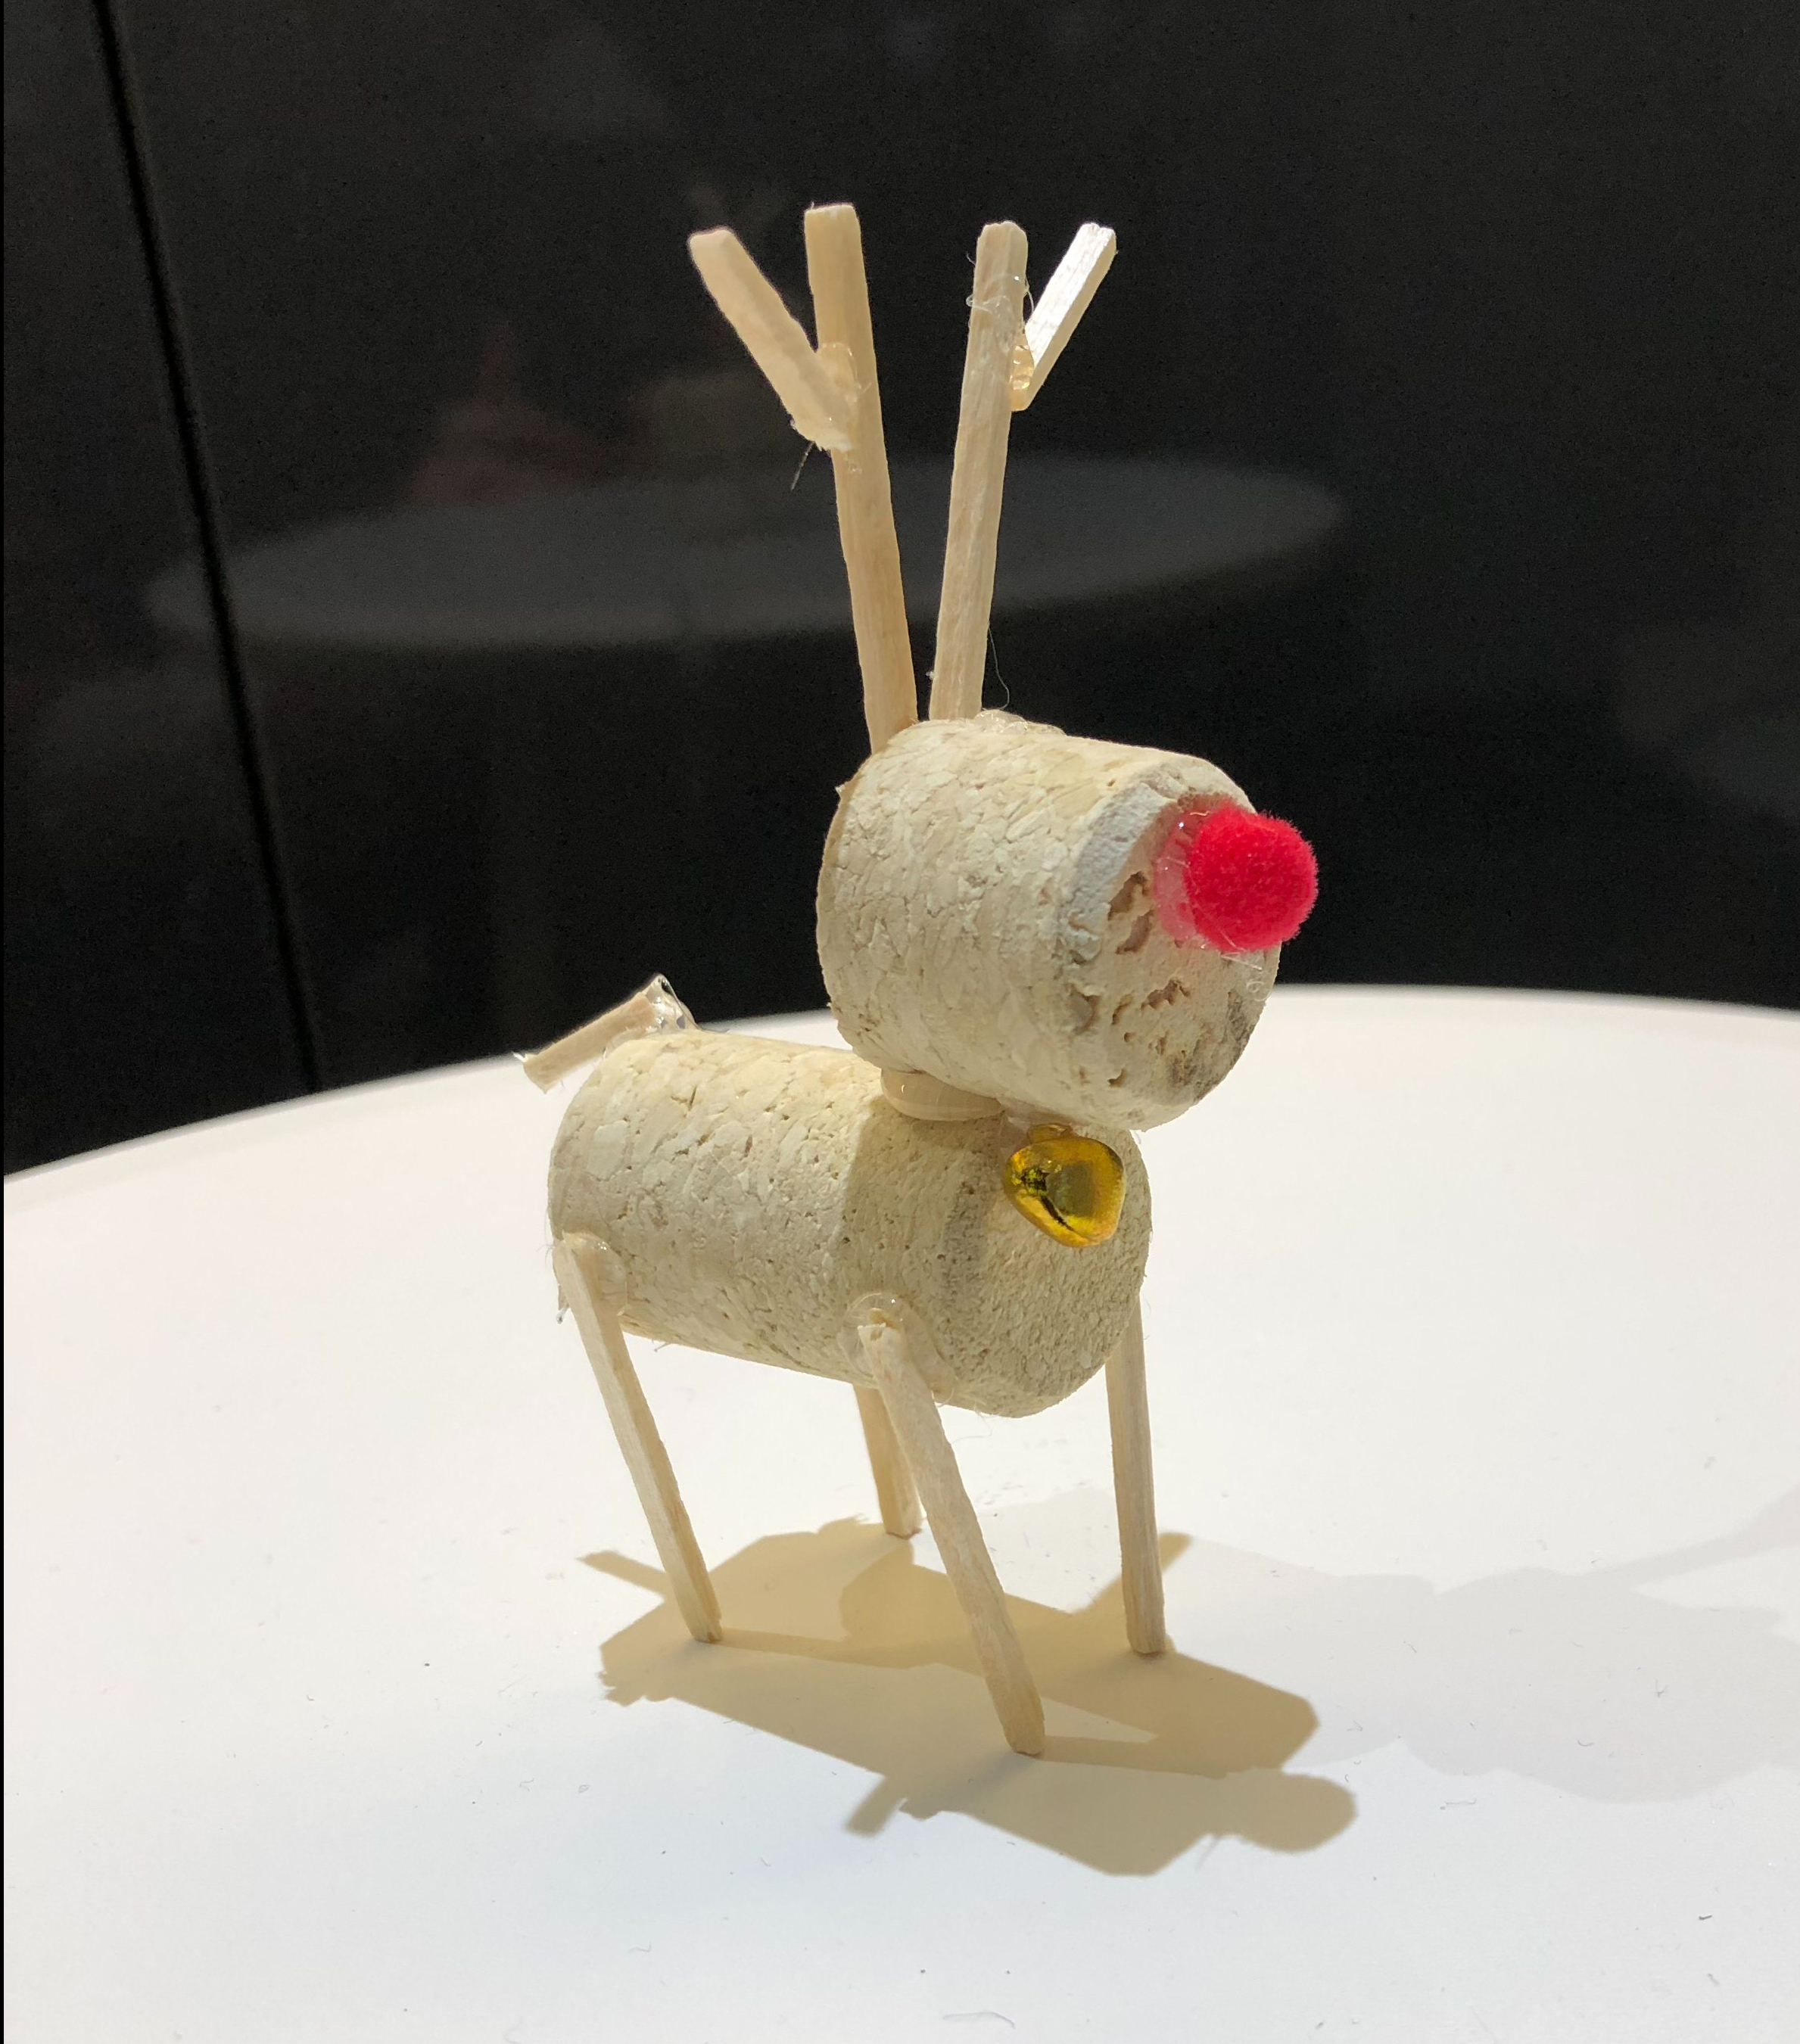 DIY Cork Reindeer graphic